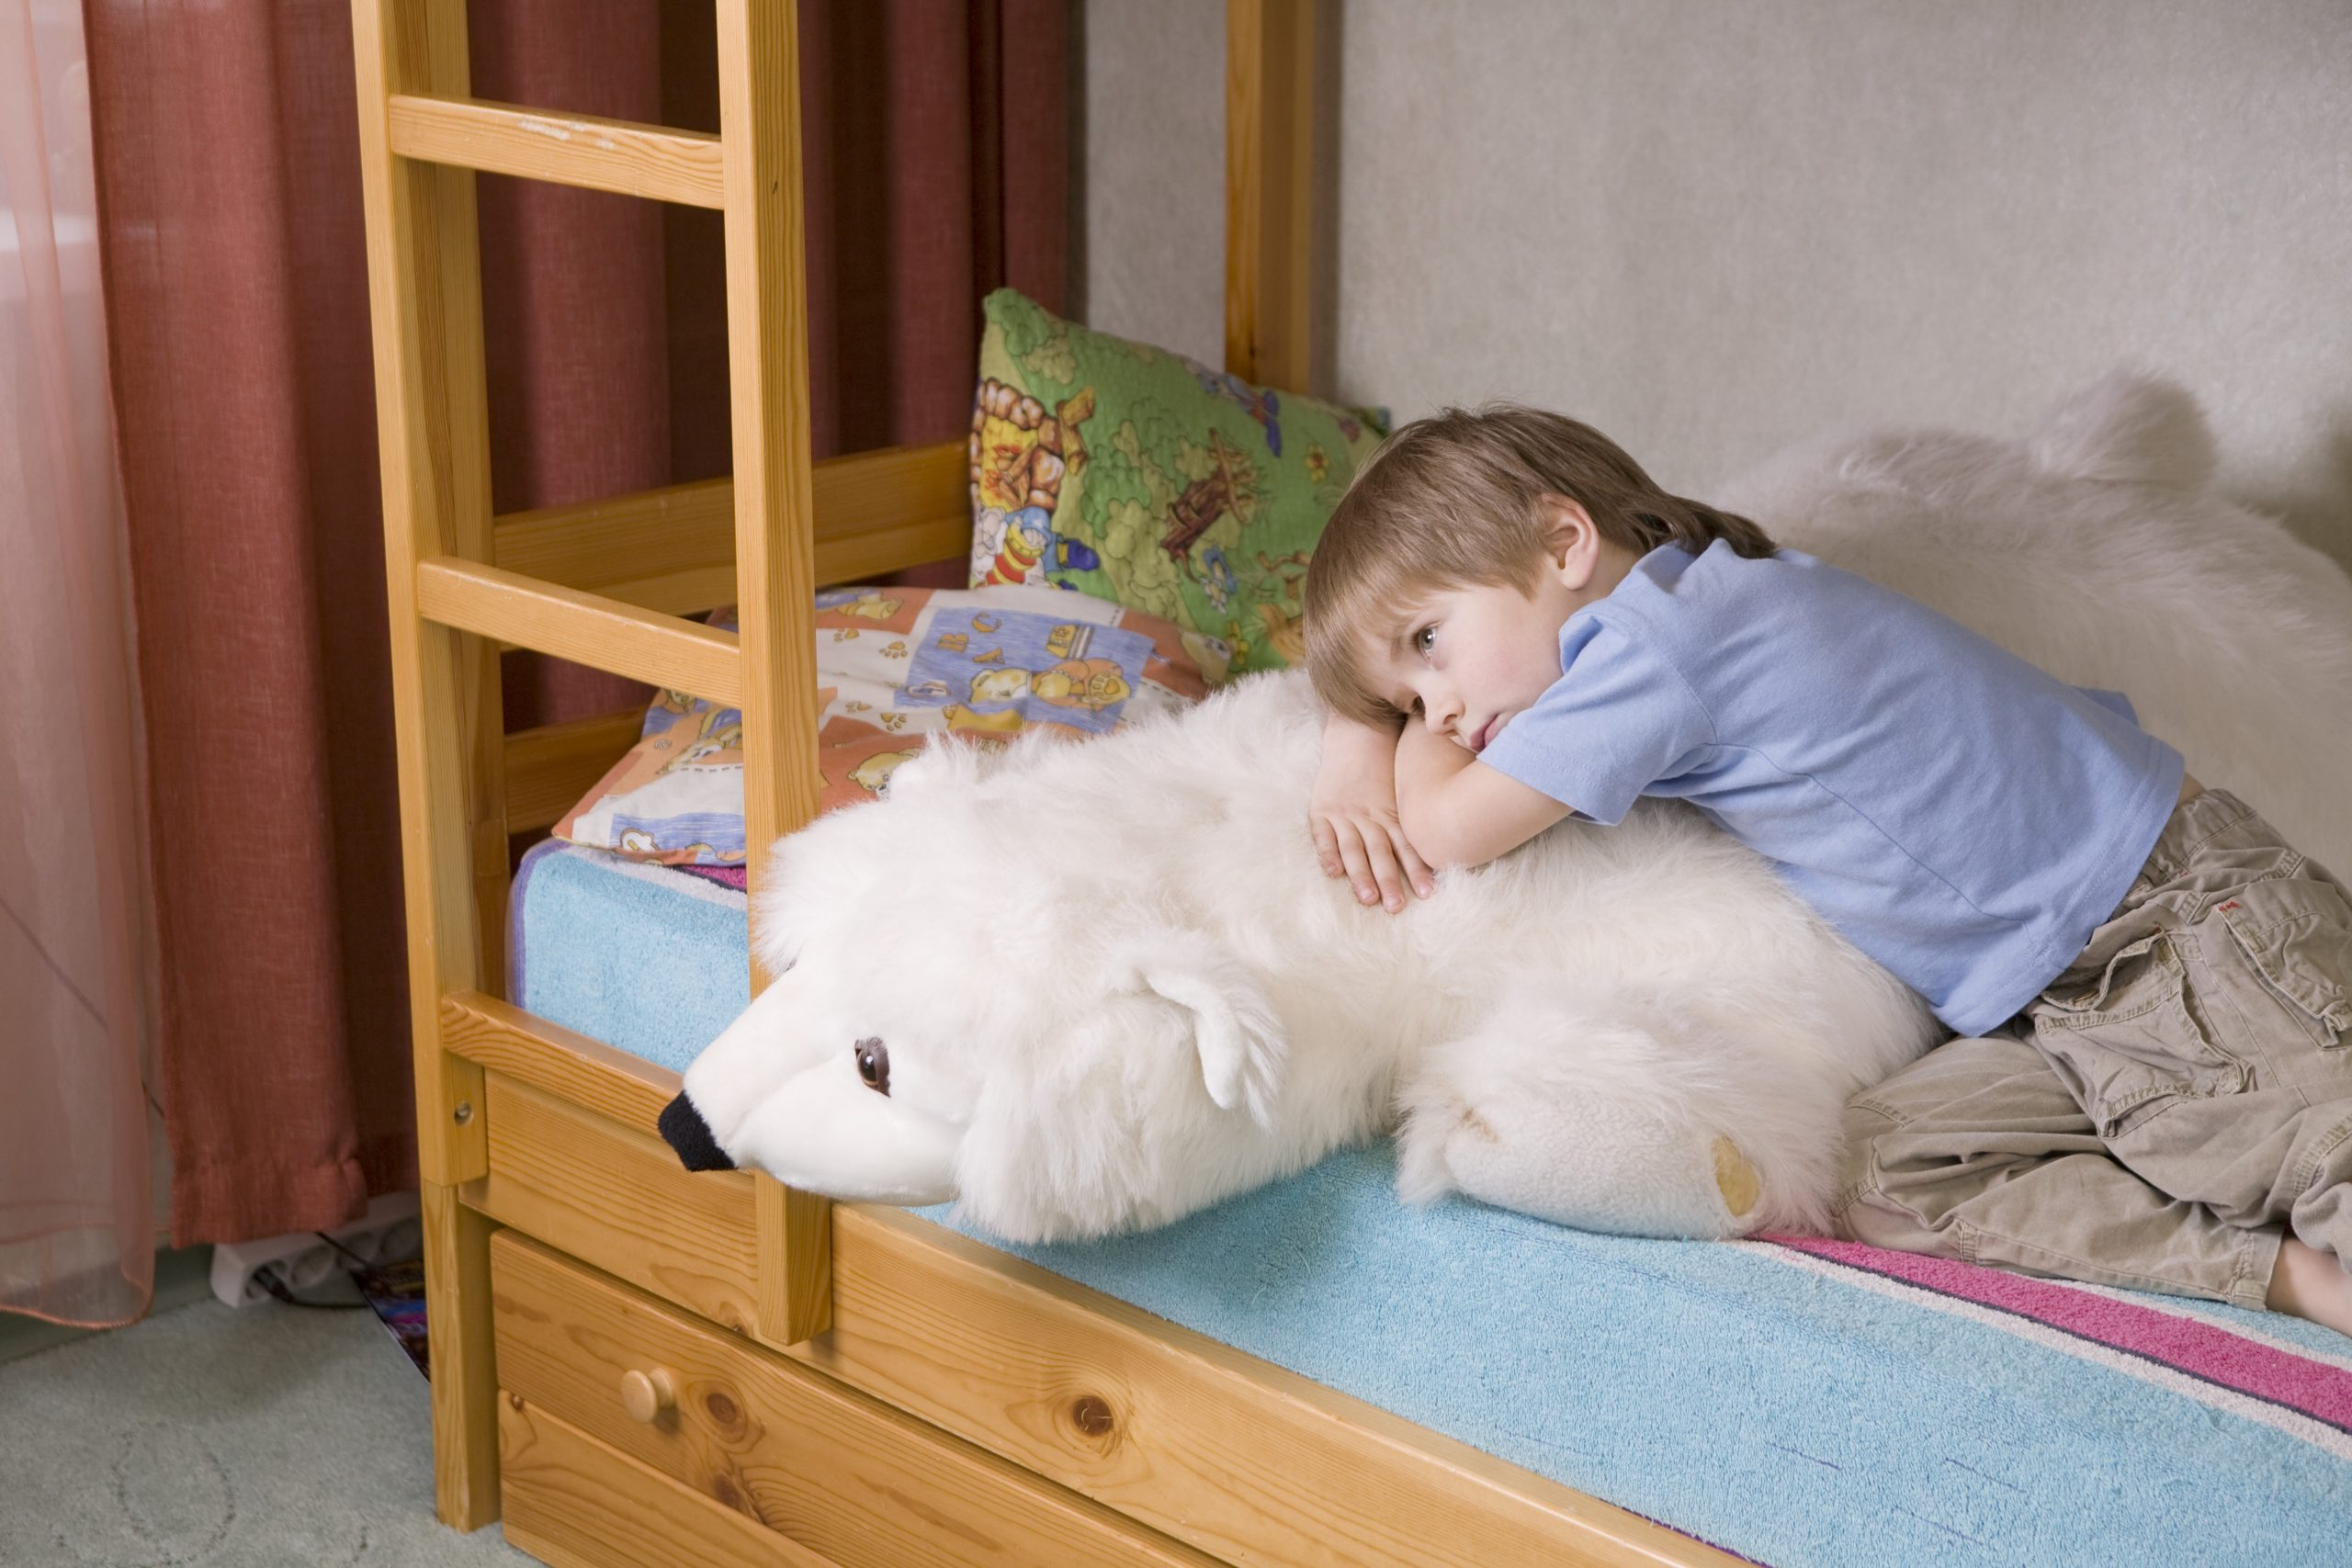 Healing From Childhood Trauma: How To Overcome Painful ...